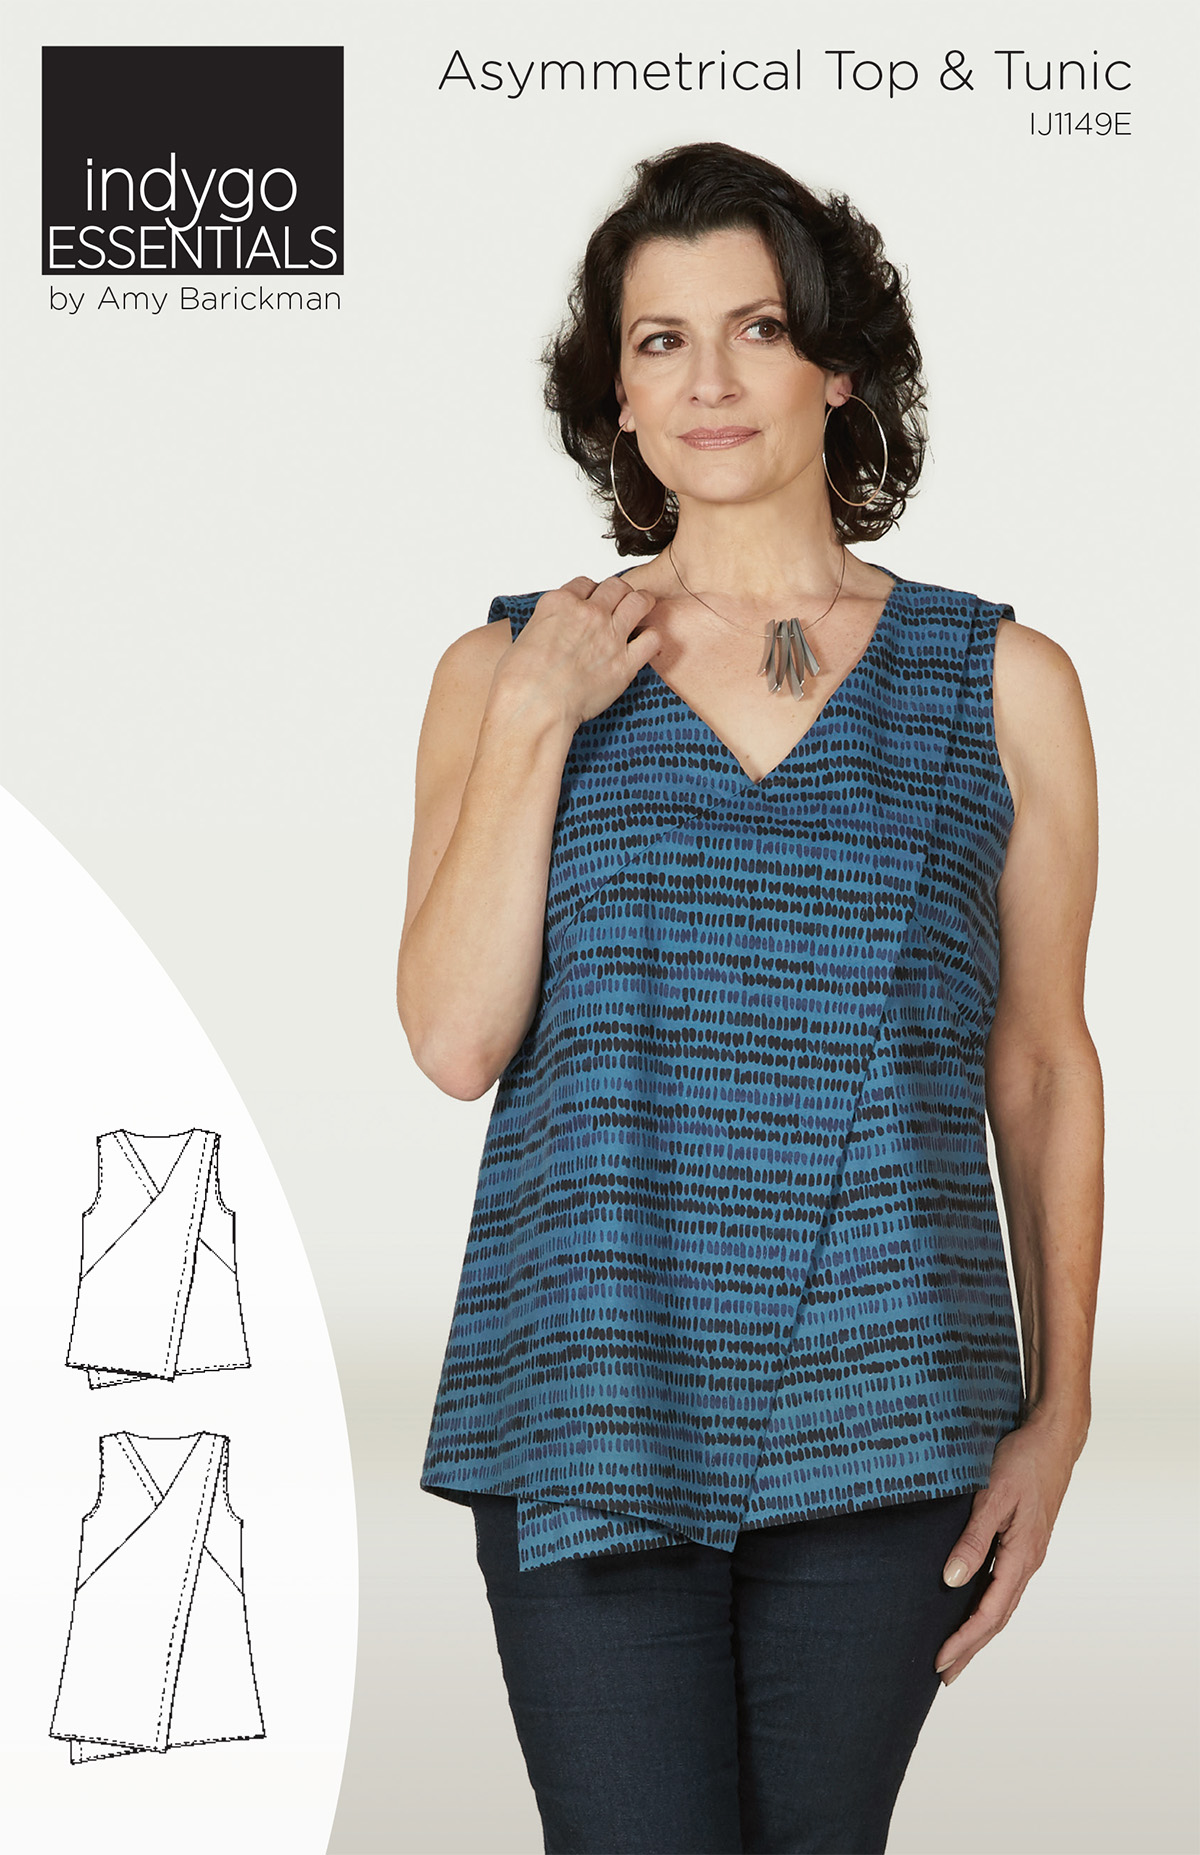 Indygo Essentials - Asymmetrical Top & Tunic